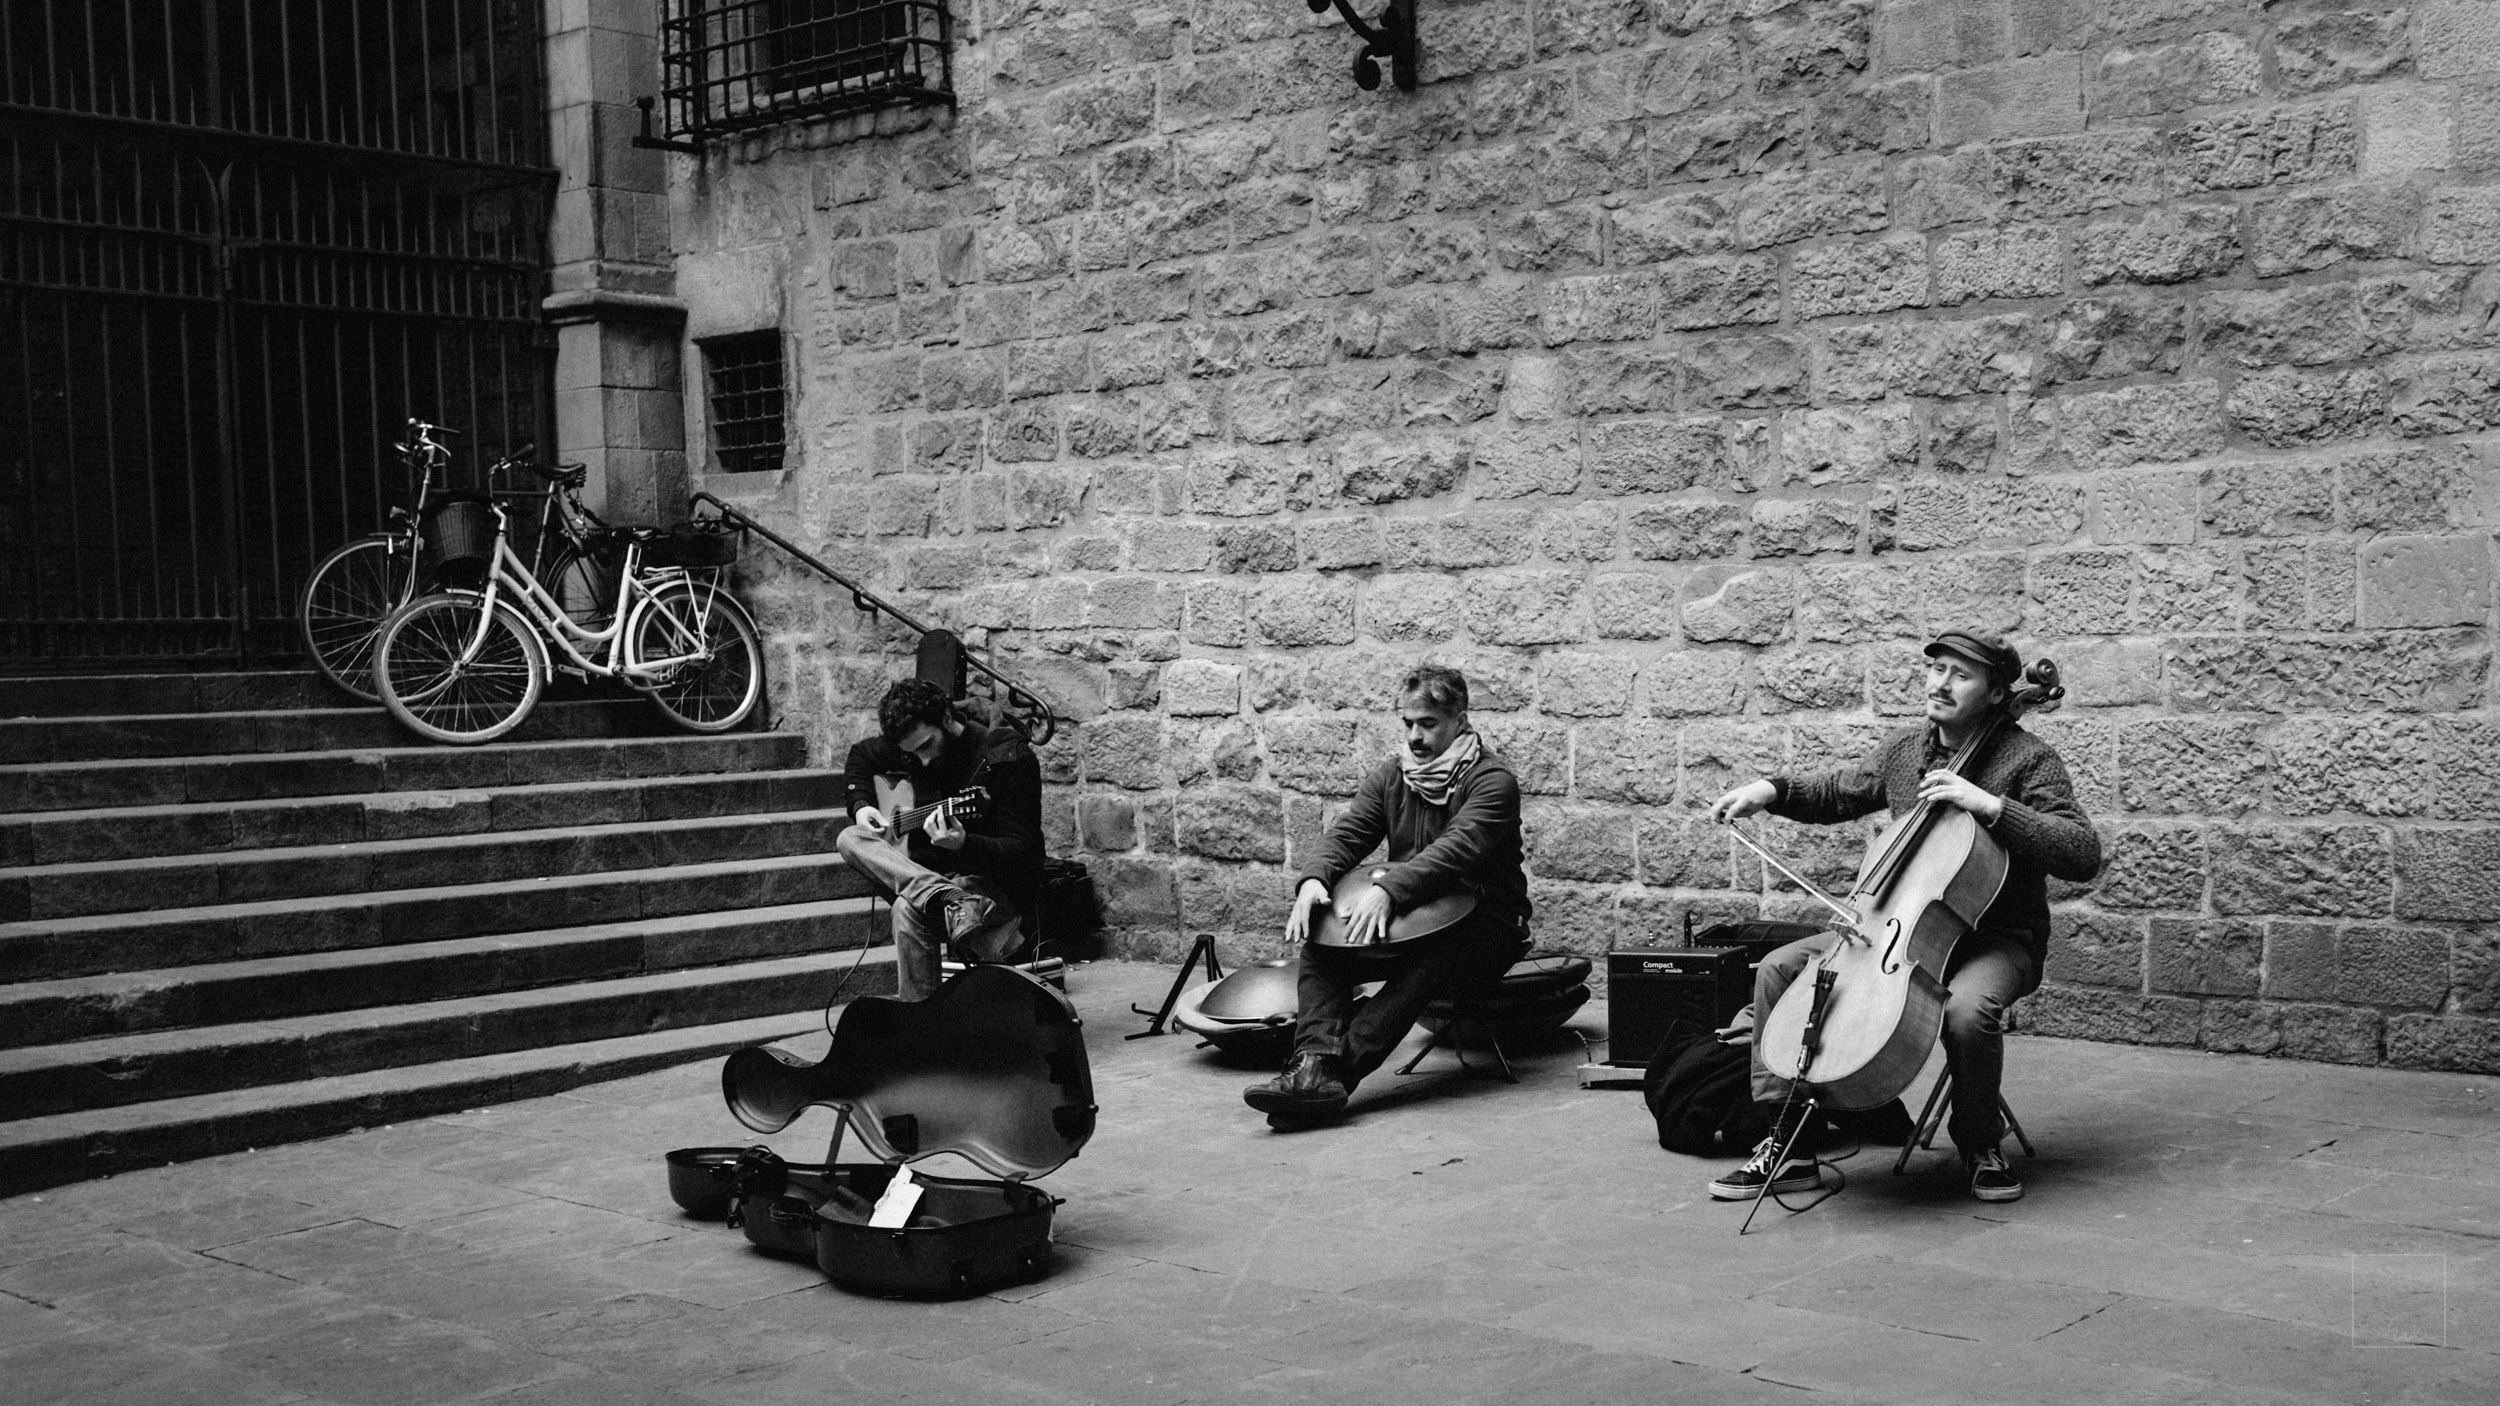 Melancholy on the streets of medieval Barcelona